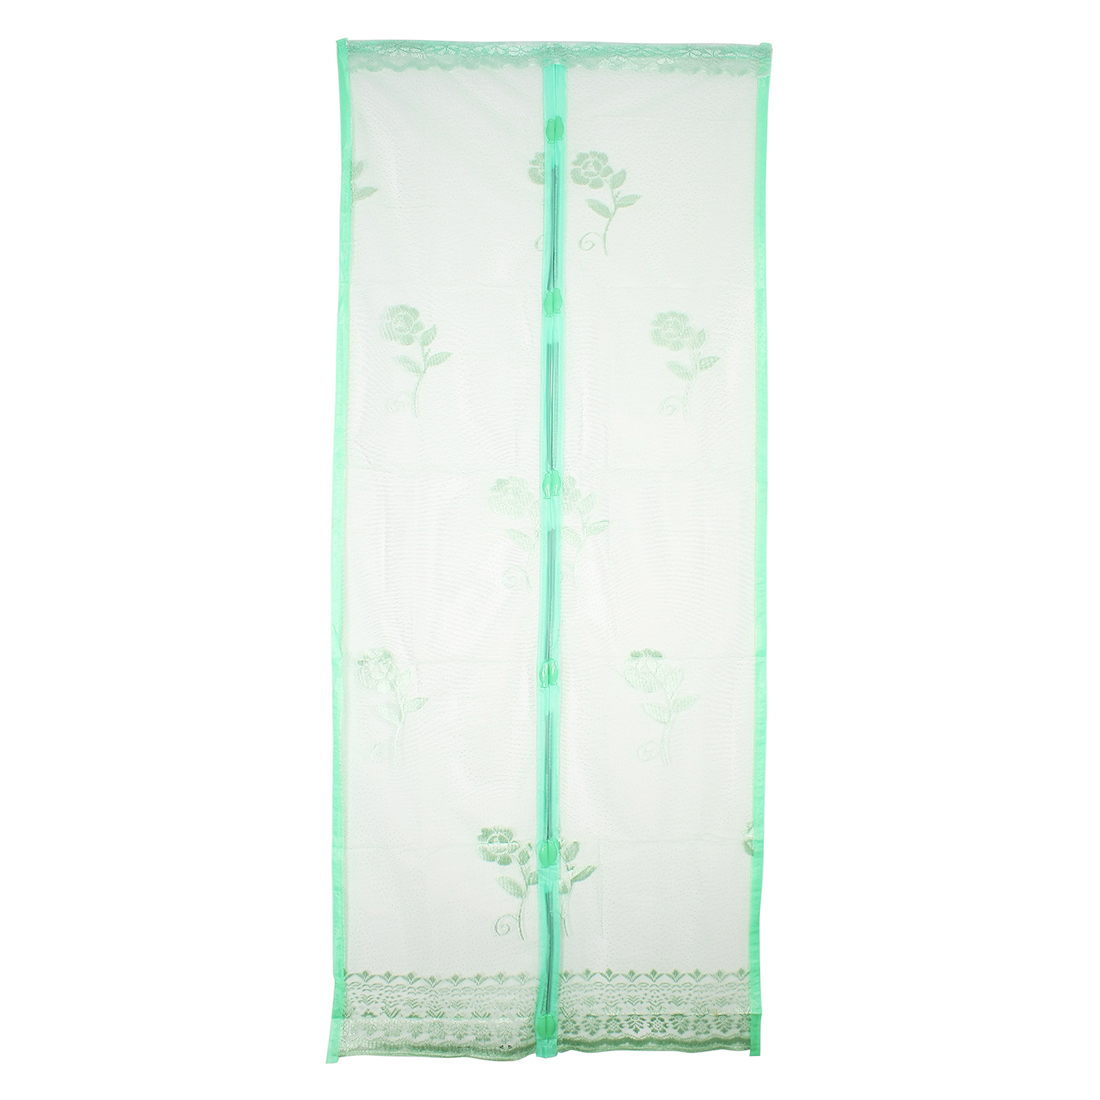 EasyFit Magnetic Door Insect Fly Curtain Mozzy Screen Door Green